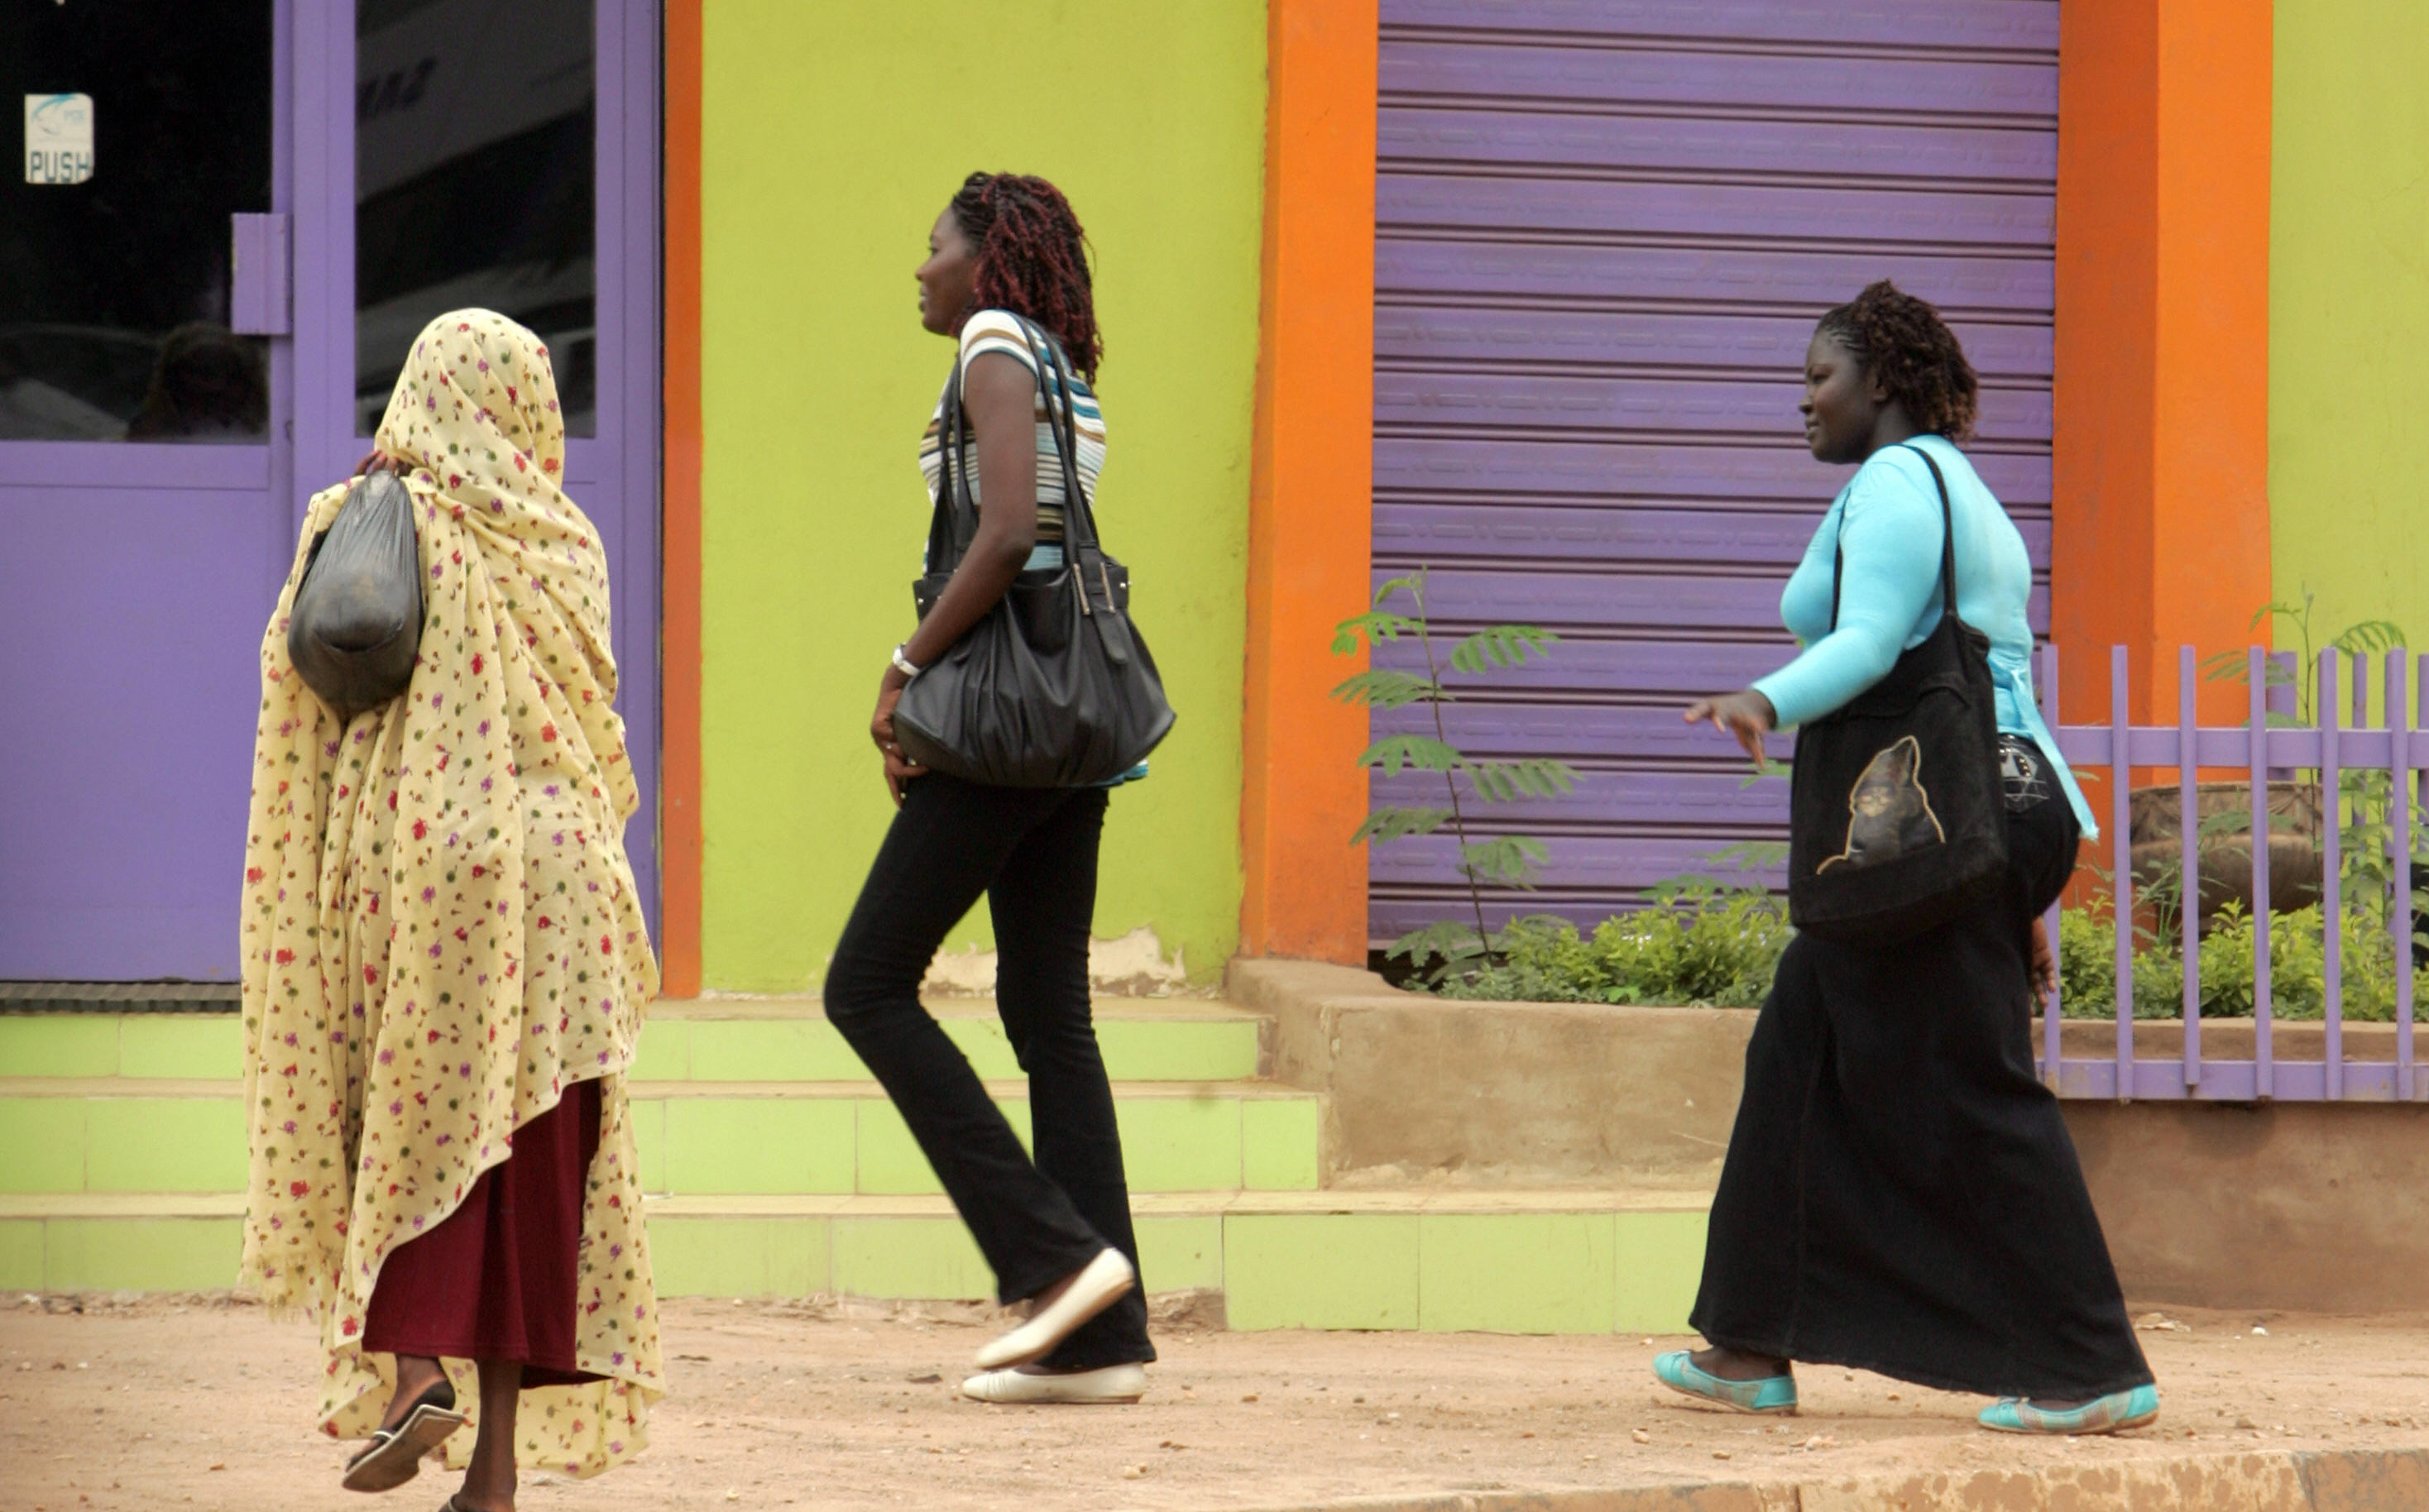 Three Sudanese women, one of them wearing trousers, walk on a main street in central Khartoum on September 8, 2009. The thousands of women who wear trousers every day all run the risk of a flogging if police decide their clothes are provocative. ASHRAF SHAZLY/AFP/Getty Images